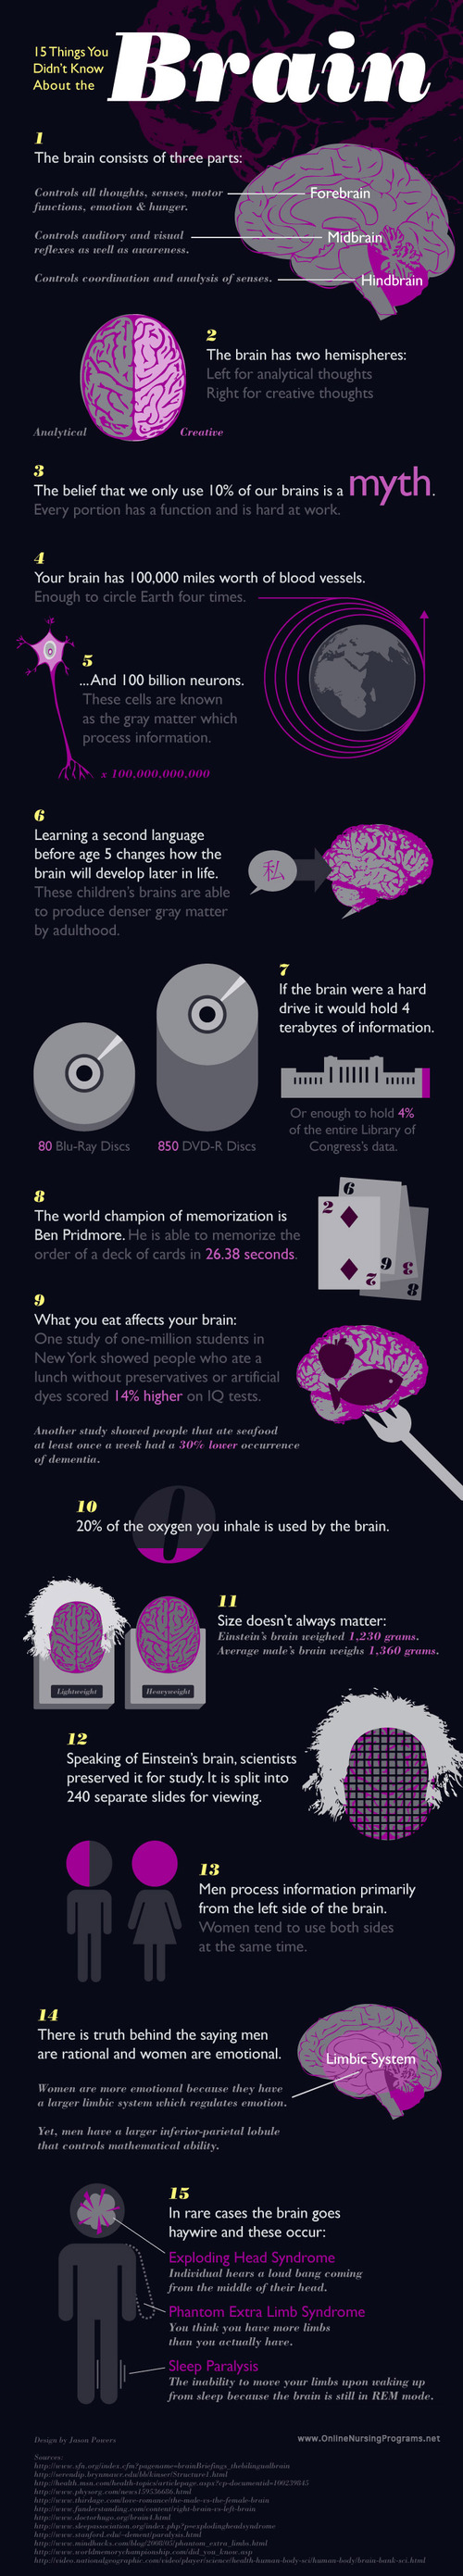 15-facts-about-the-brain